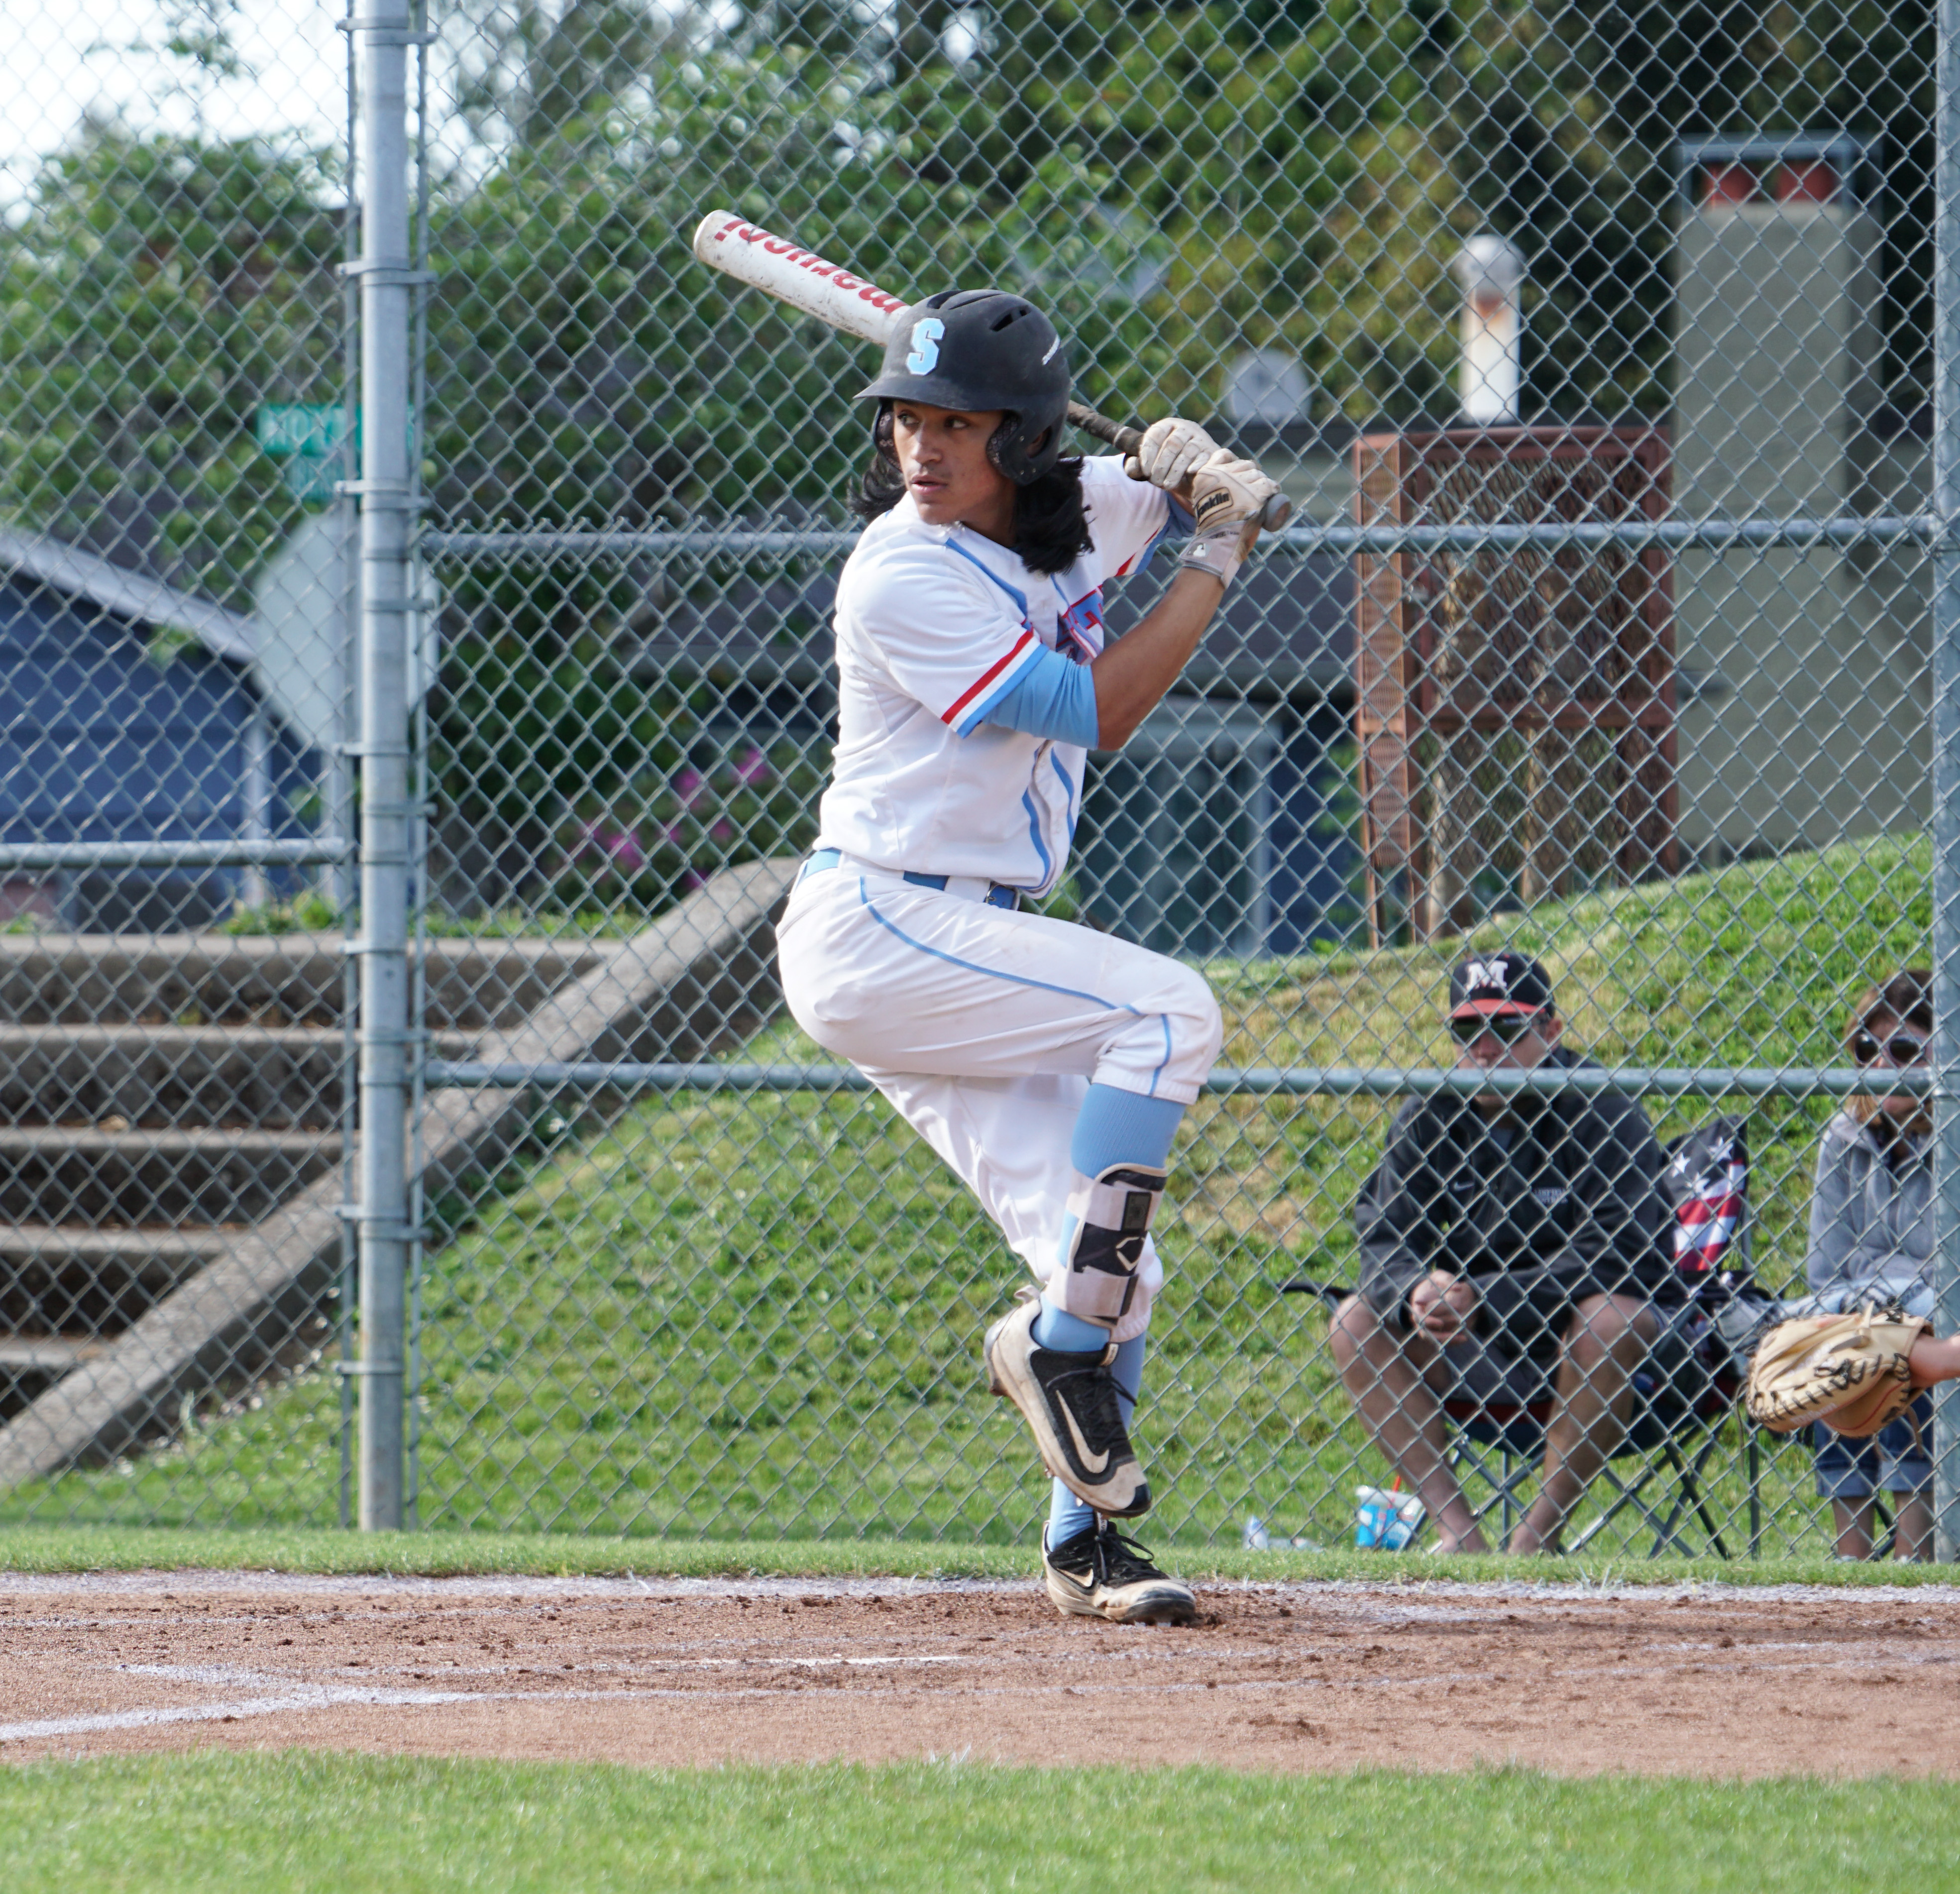 BASE: Brown powers Saxons past Cleveland, 13-1